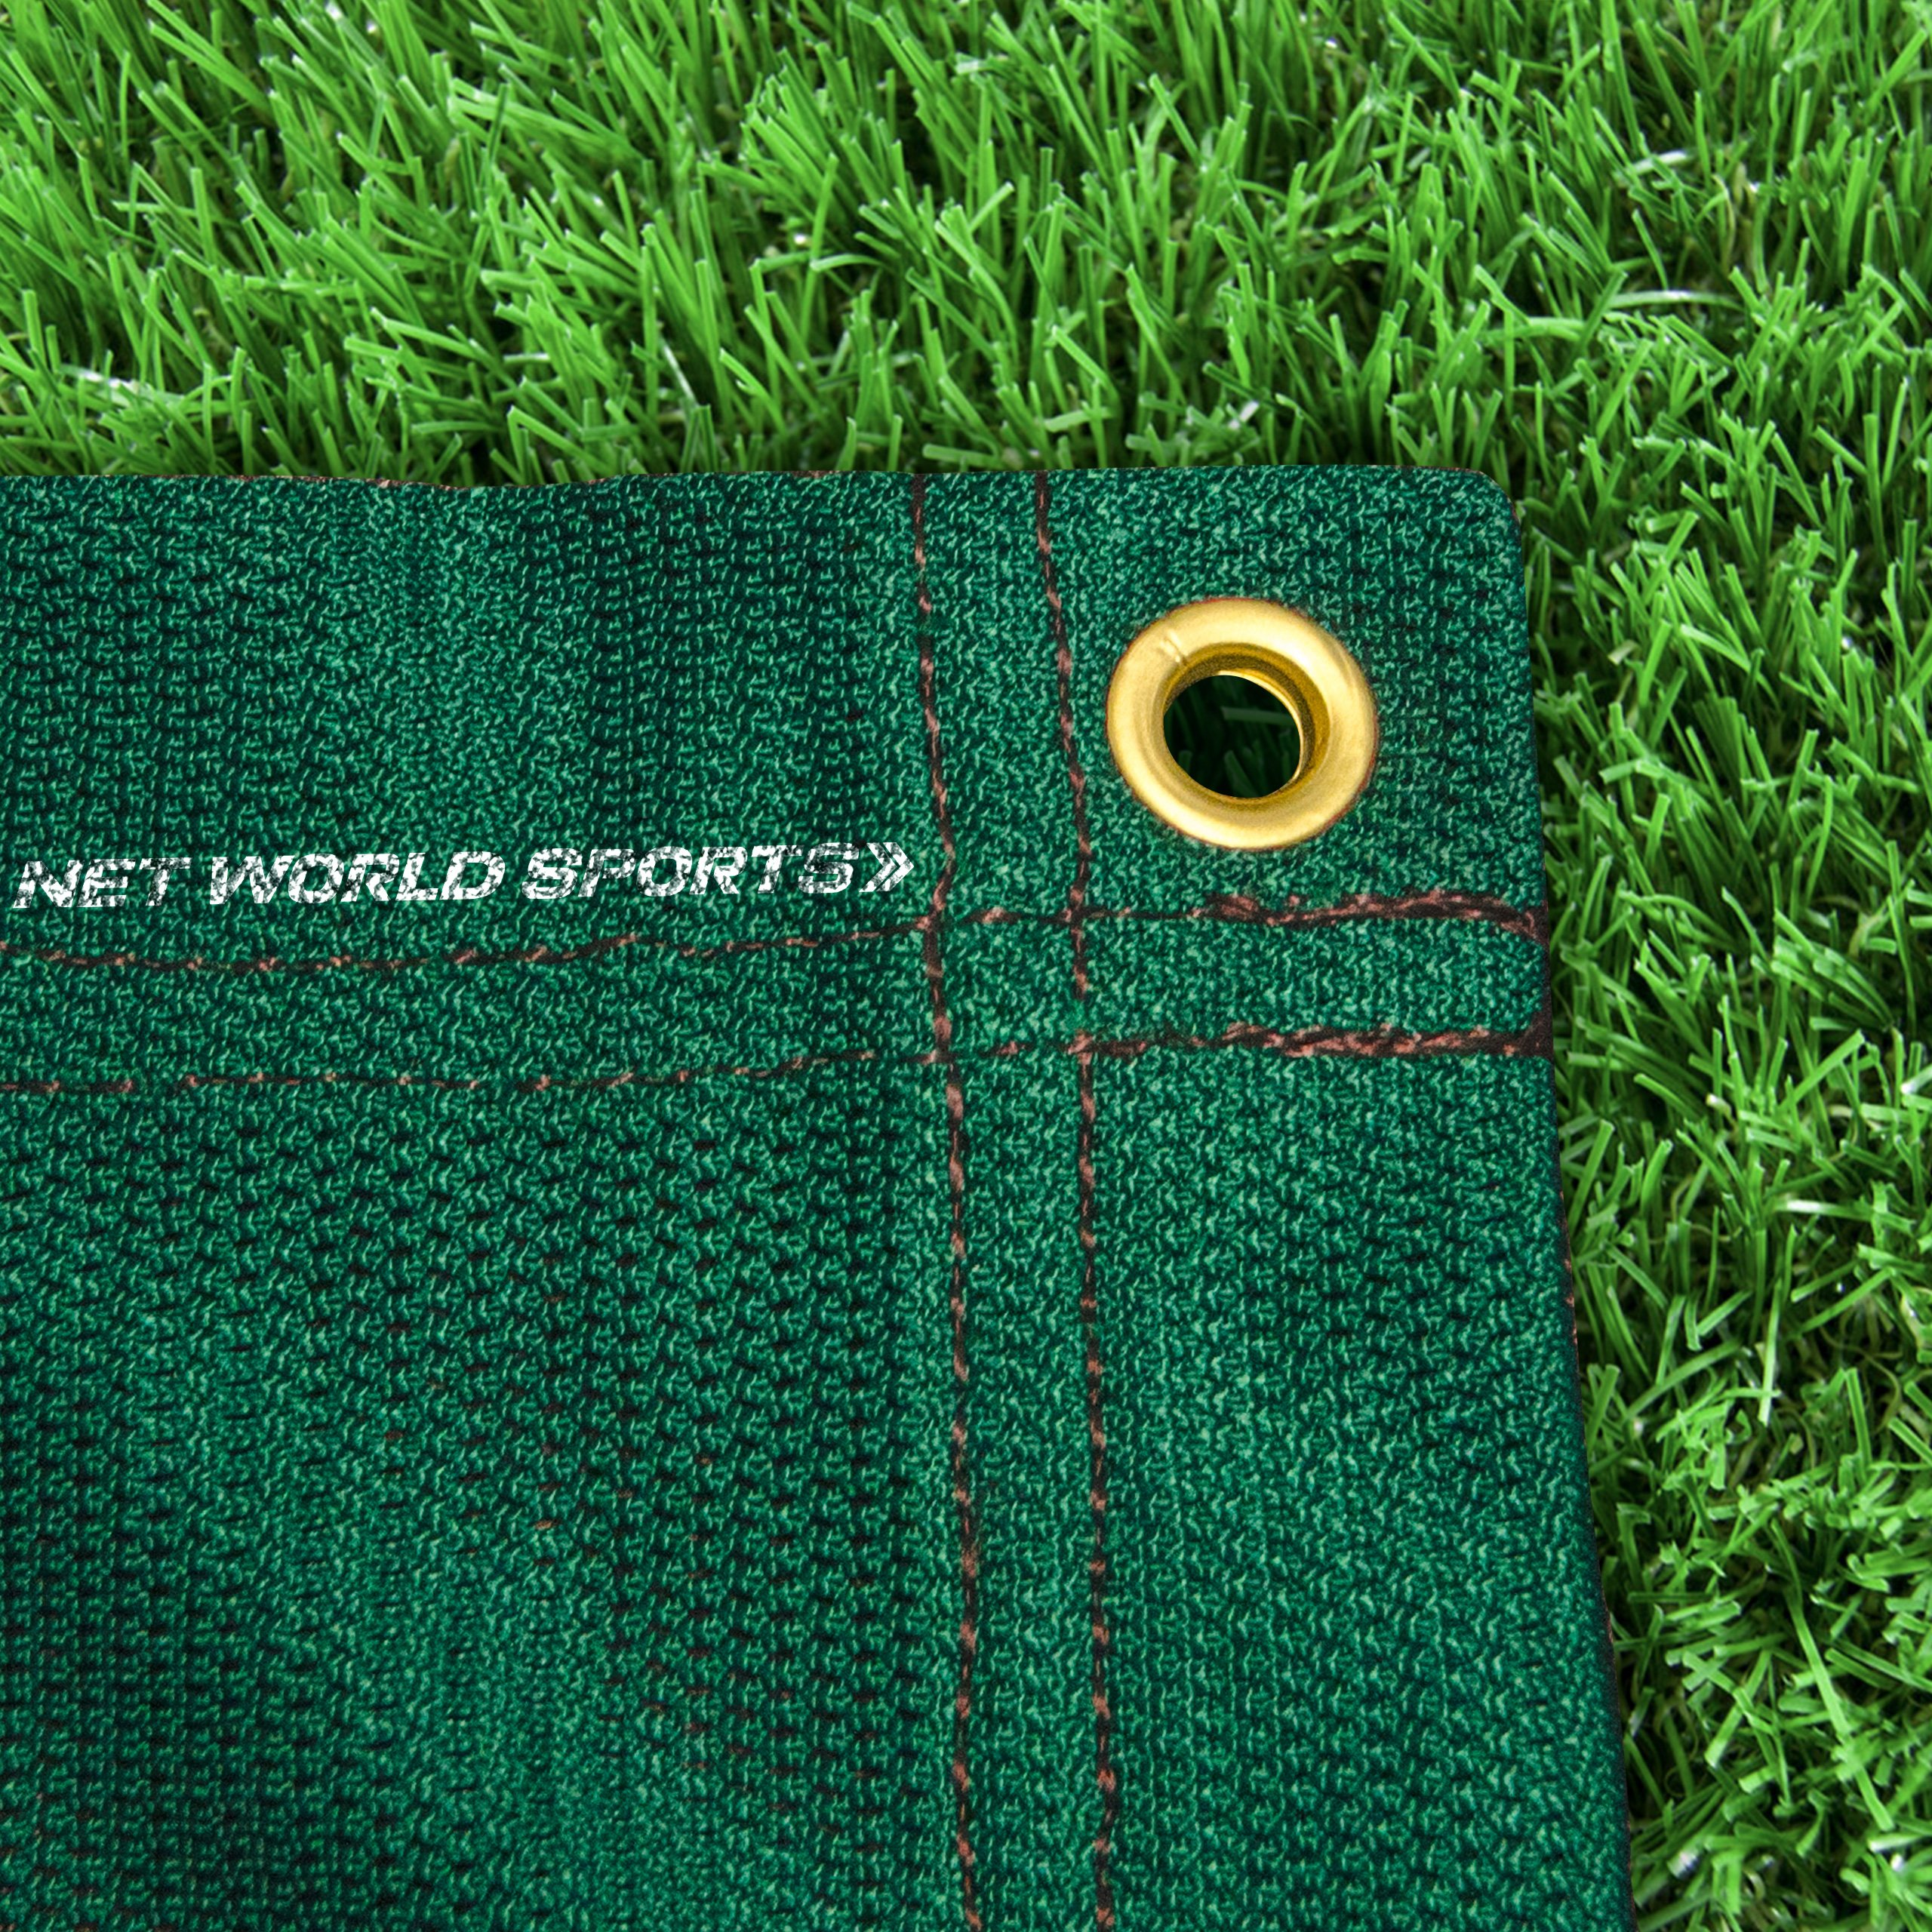 Replacement 10ft X 10ft Archery Grade Golf Impact Panel Netting (Green) – Super Strong Nets Guaranteed To Protect Your Golf Practice Cage From Damage [Net World Sports] by Net World Sports (Image #1)